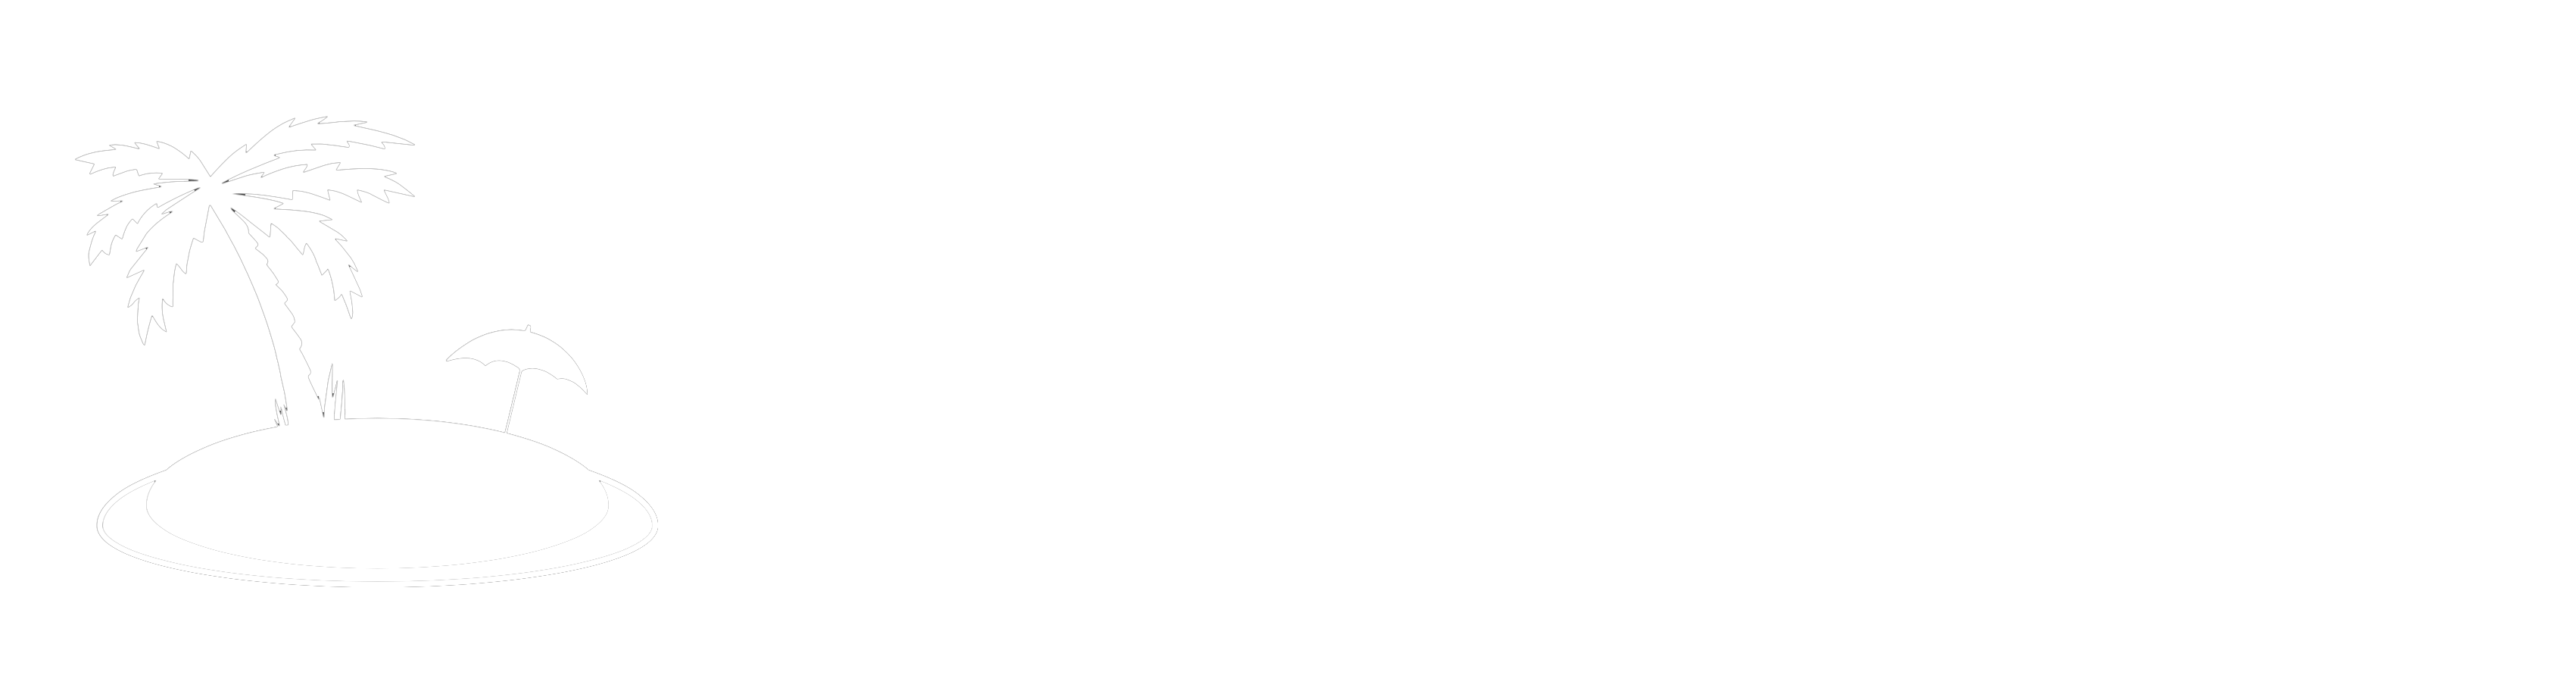 Maldives for All | About - Maldives for All